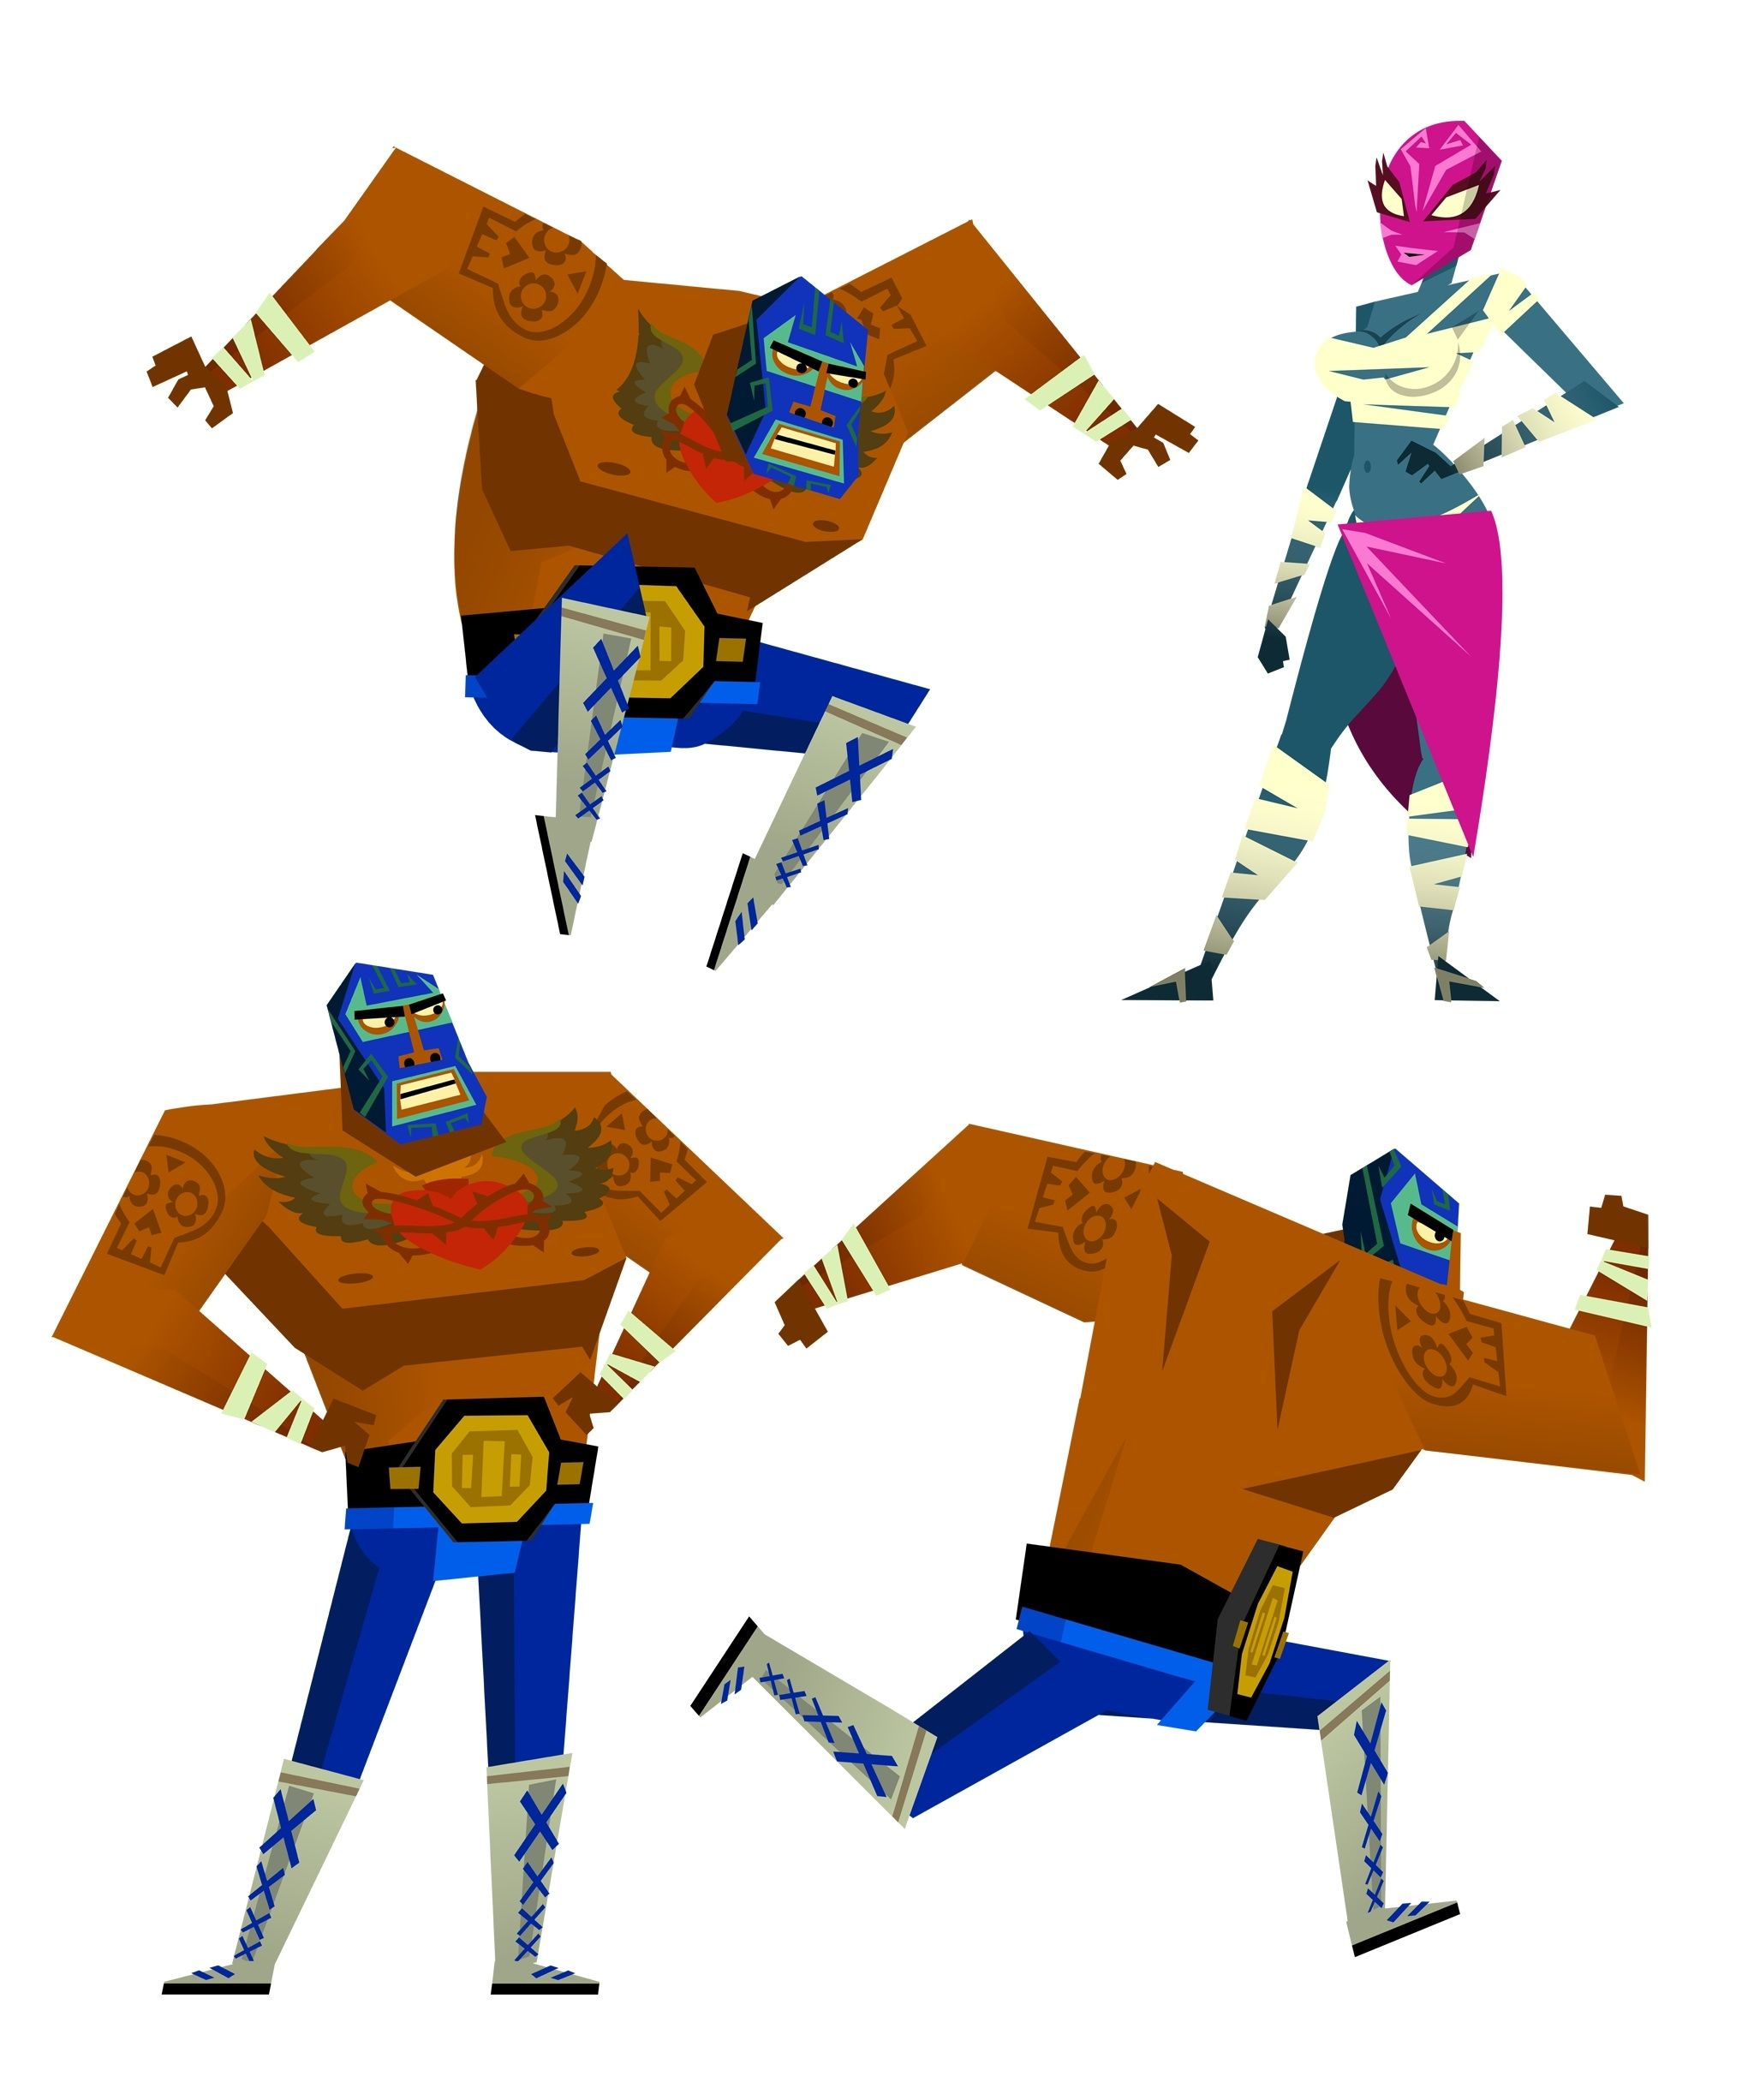 Guacamelee 2 Brings Mayhem To Ps4 And Pc On August 21st Https Engt Co 2a9bldy Bring It On T Birds Grease Car Guy Gifts